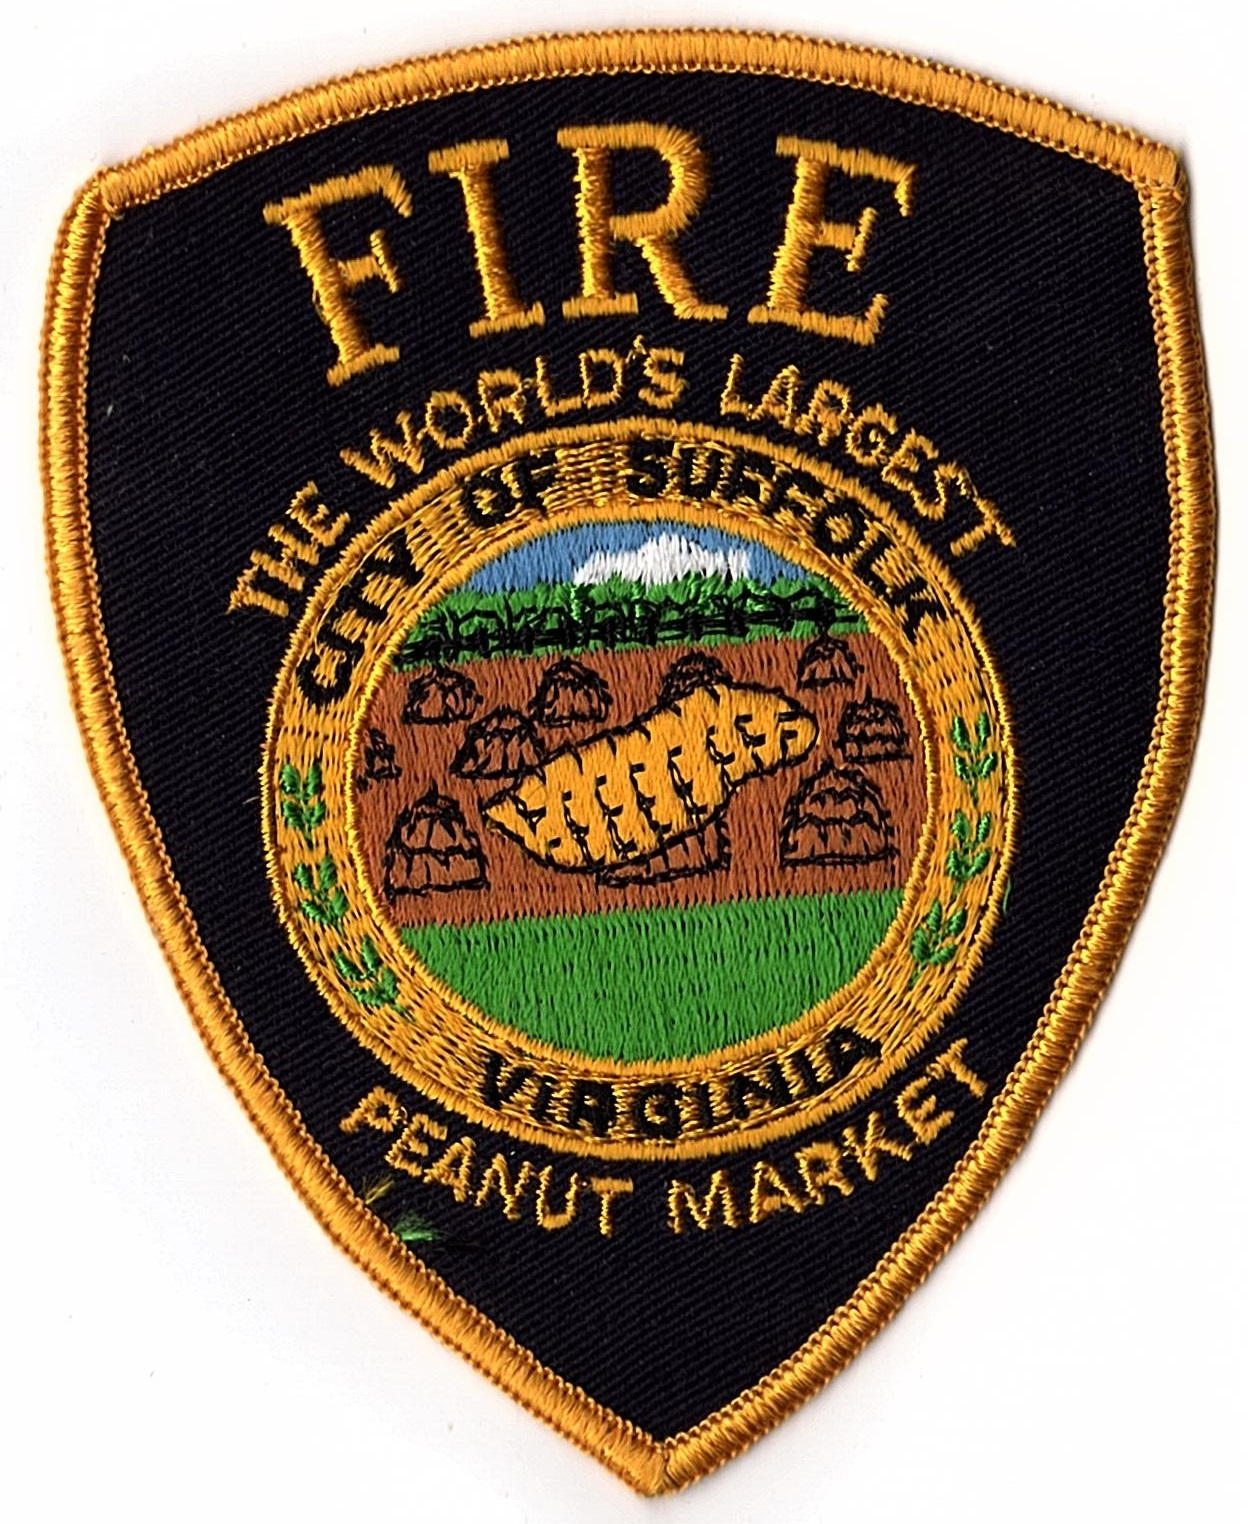 City of Suffolk Fire Department Patch